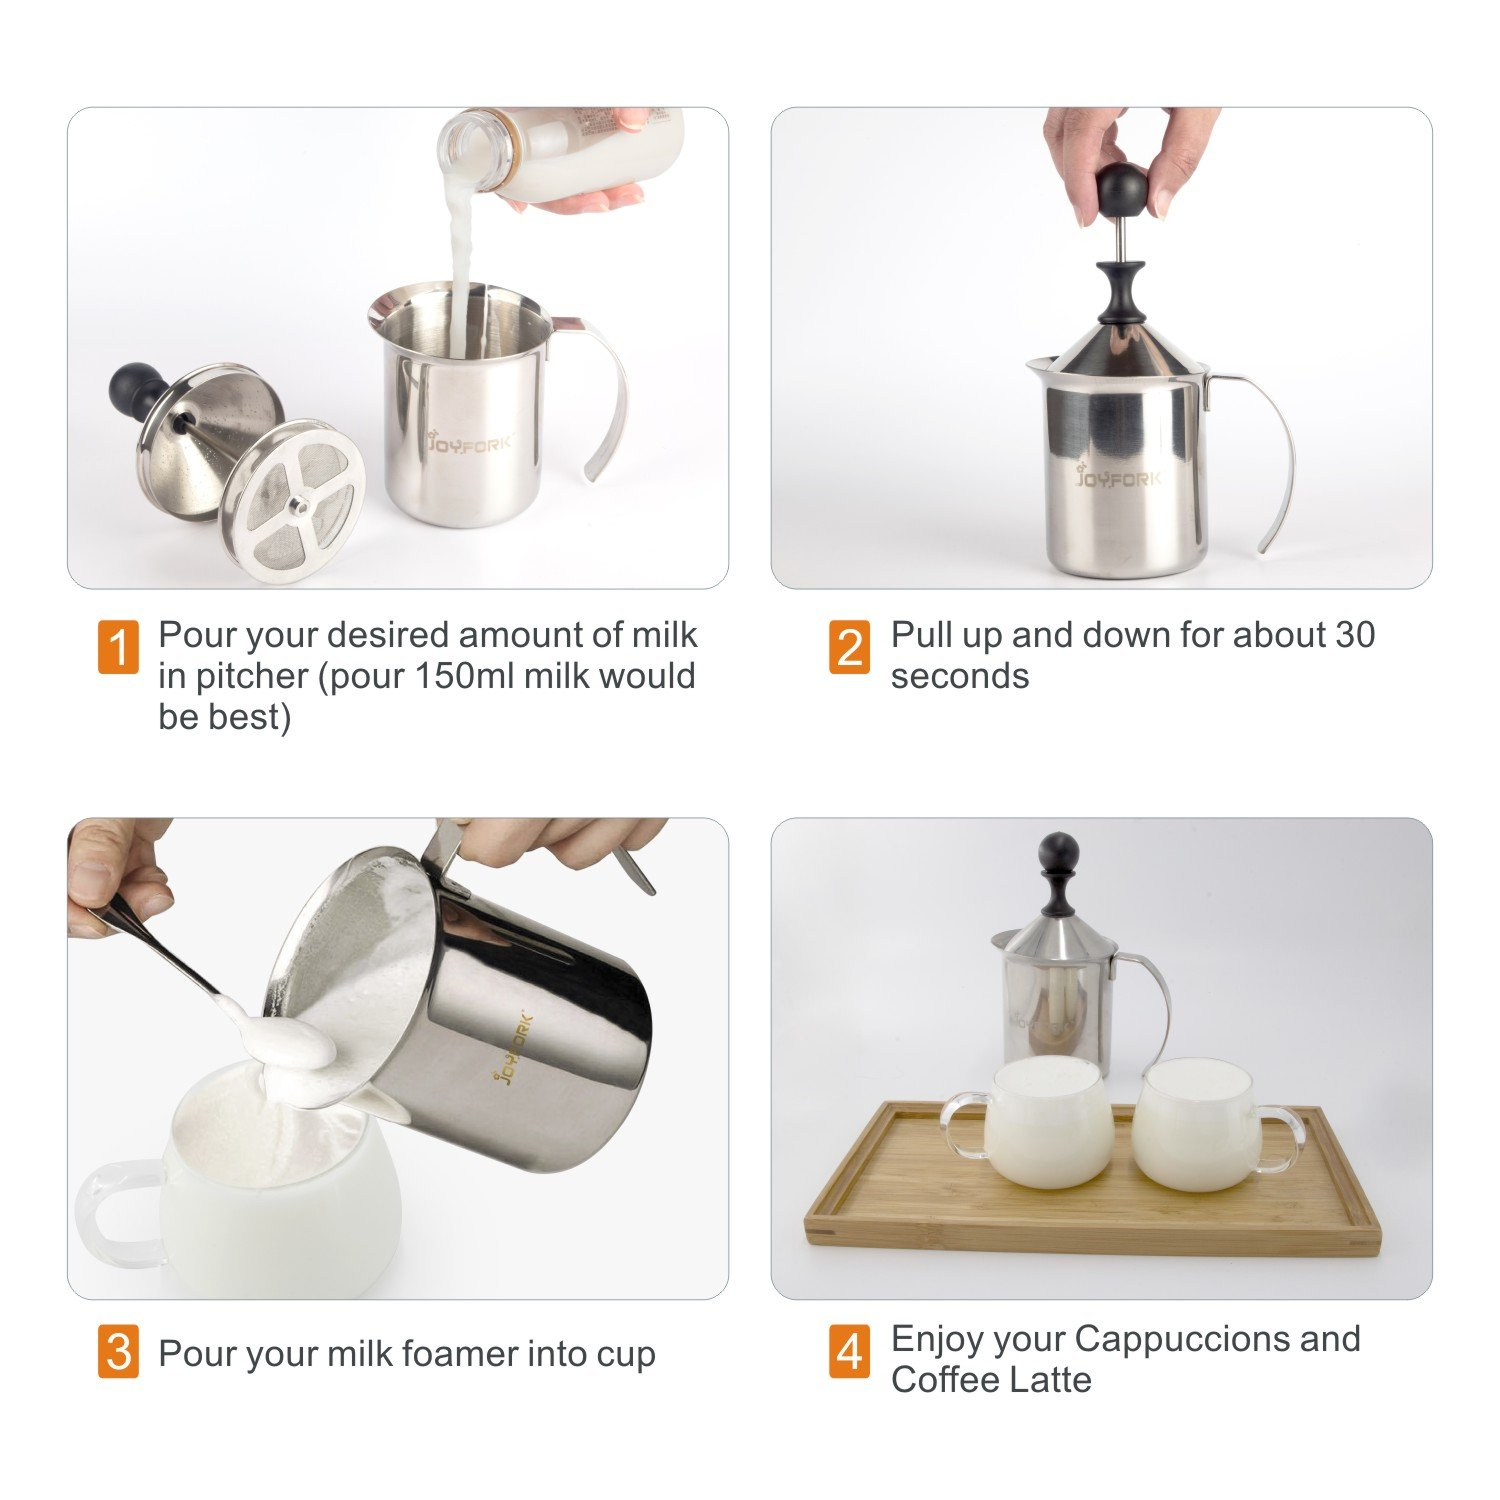 Manual Milk Frother,JoyFork Stainless Steel Hand Pump Milk Foamer, Handheld Milk Frothing Pitchers,Manual Foam Maker with Proffessional Fancy Latte Art Pen For Cappuccinos and Coffee Latte 14-Ounce by JoyFork (Image #4)